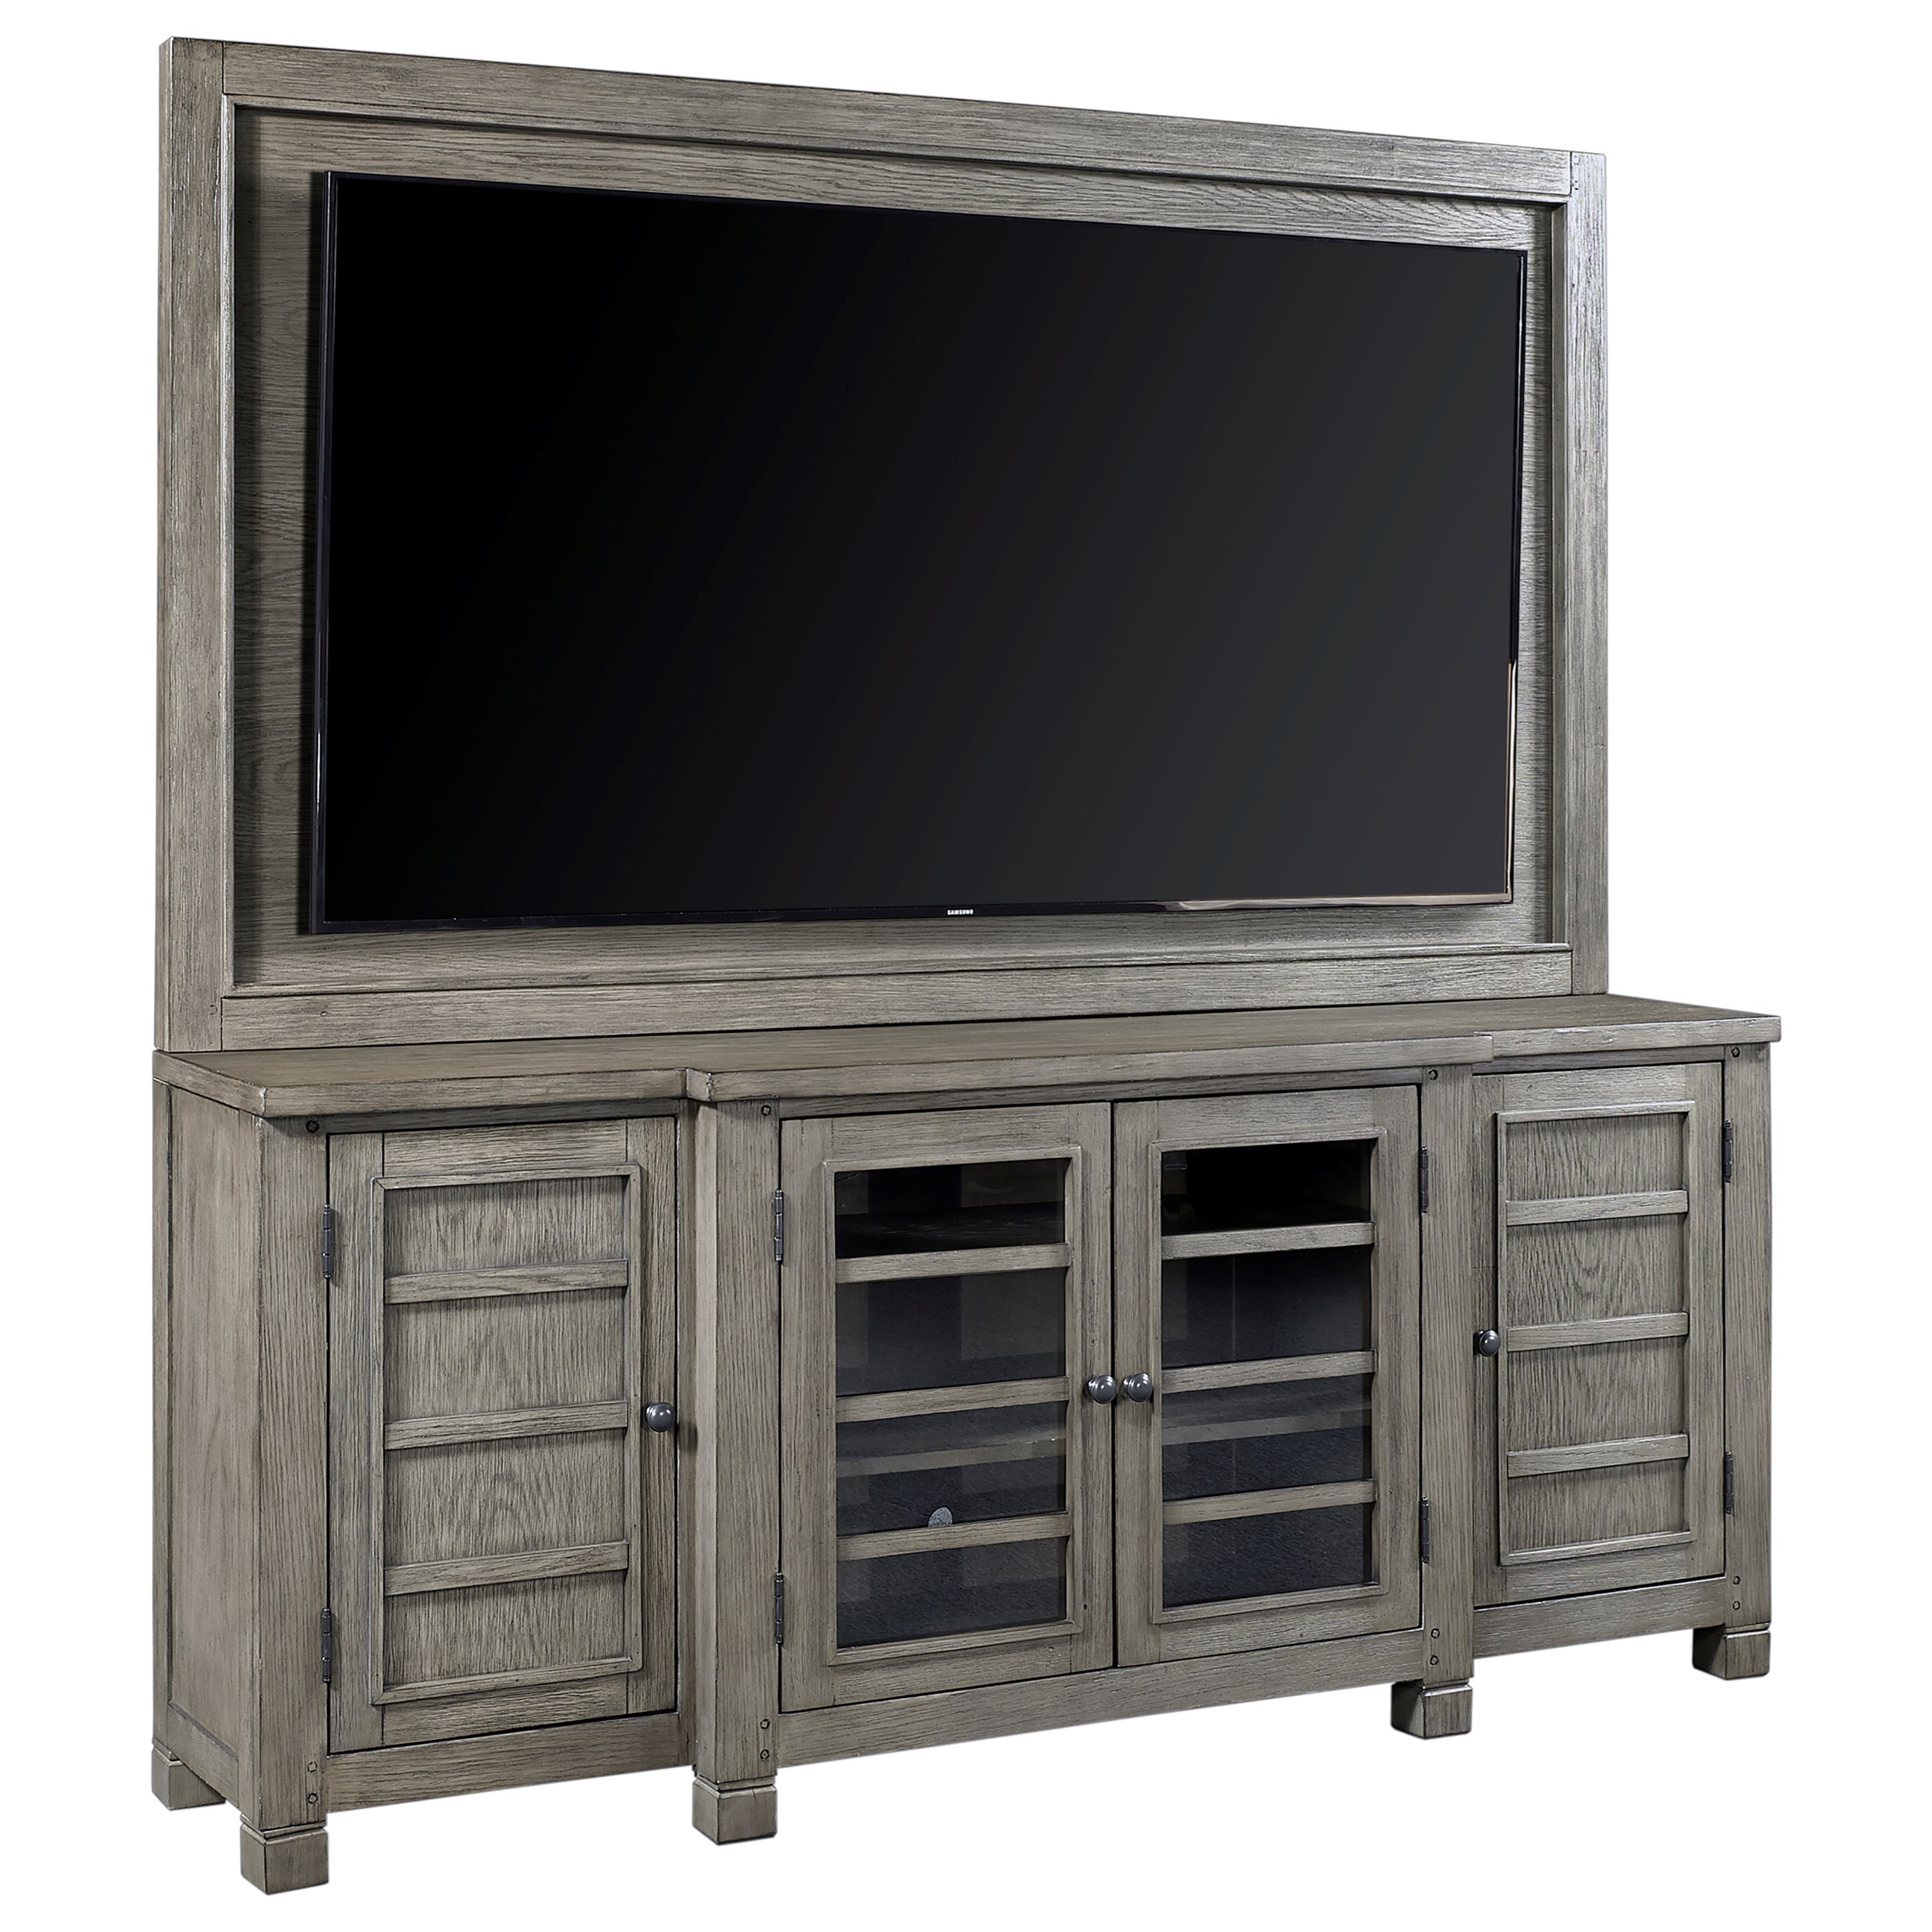 "Tucker 75"" Console with TV Backer by Aspenhome at Walker's Furniture"